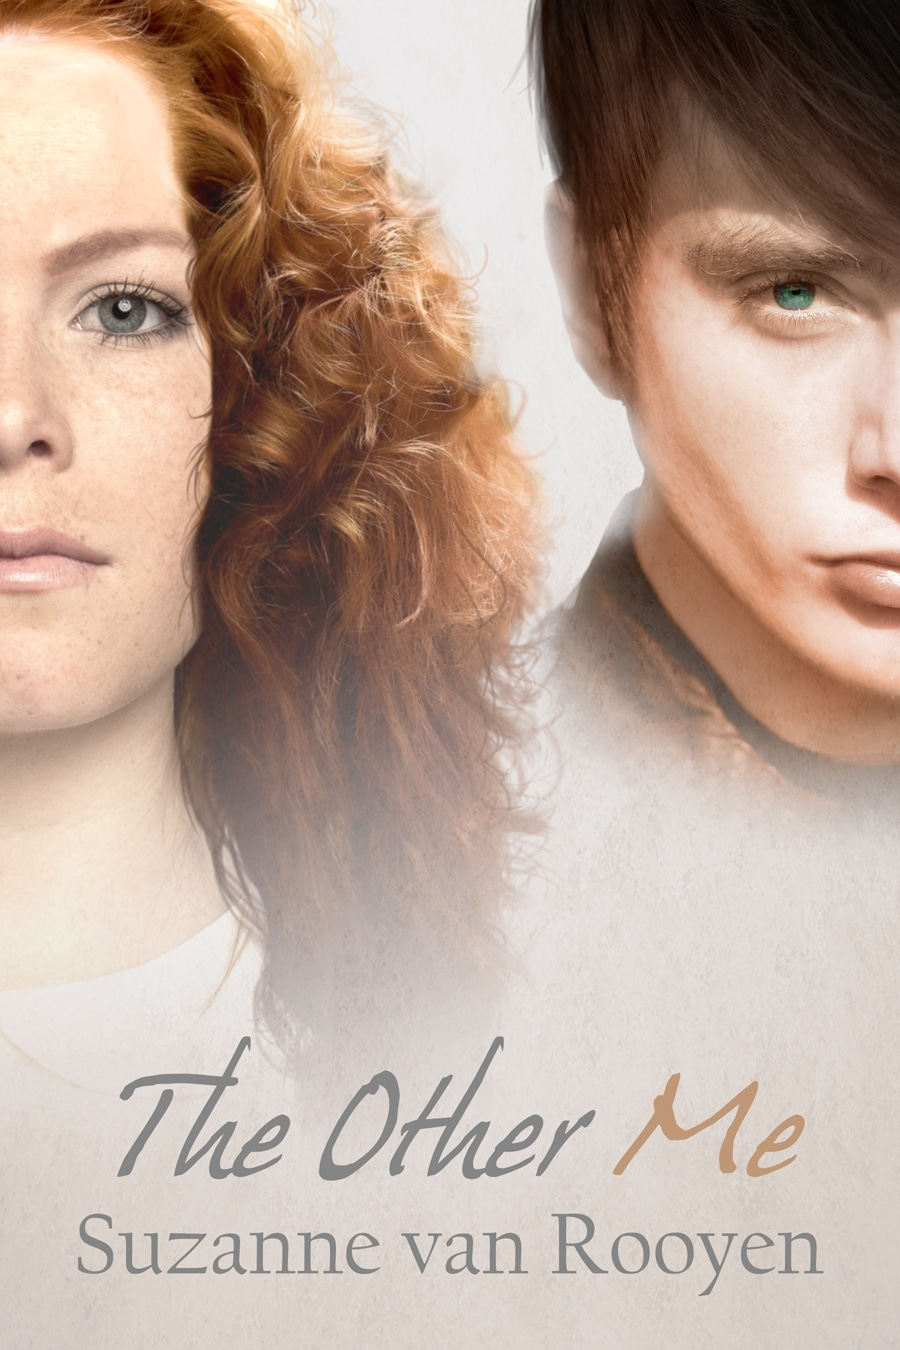 Cover Reveal: Suzanne Van Rooyen's The Other Me